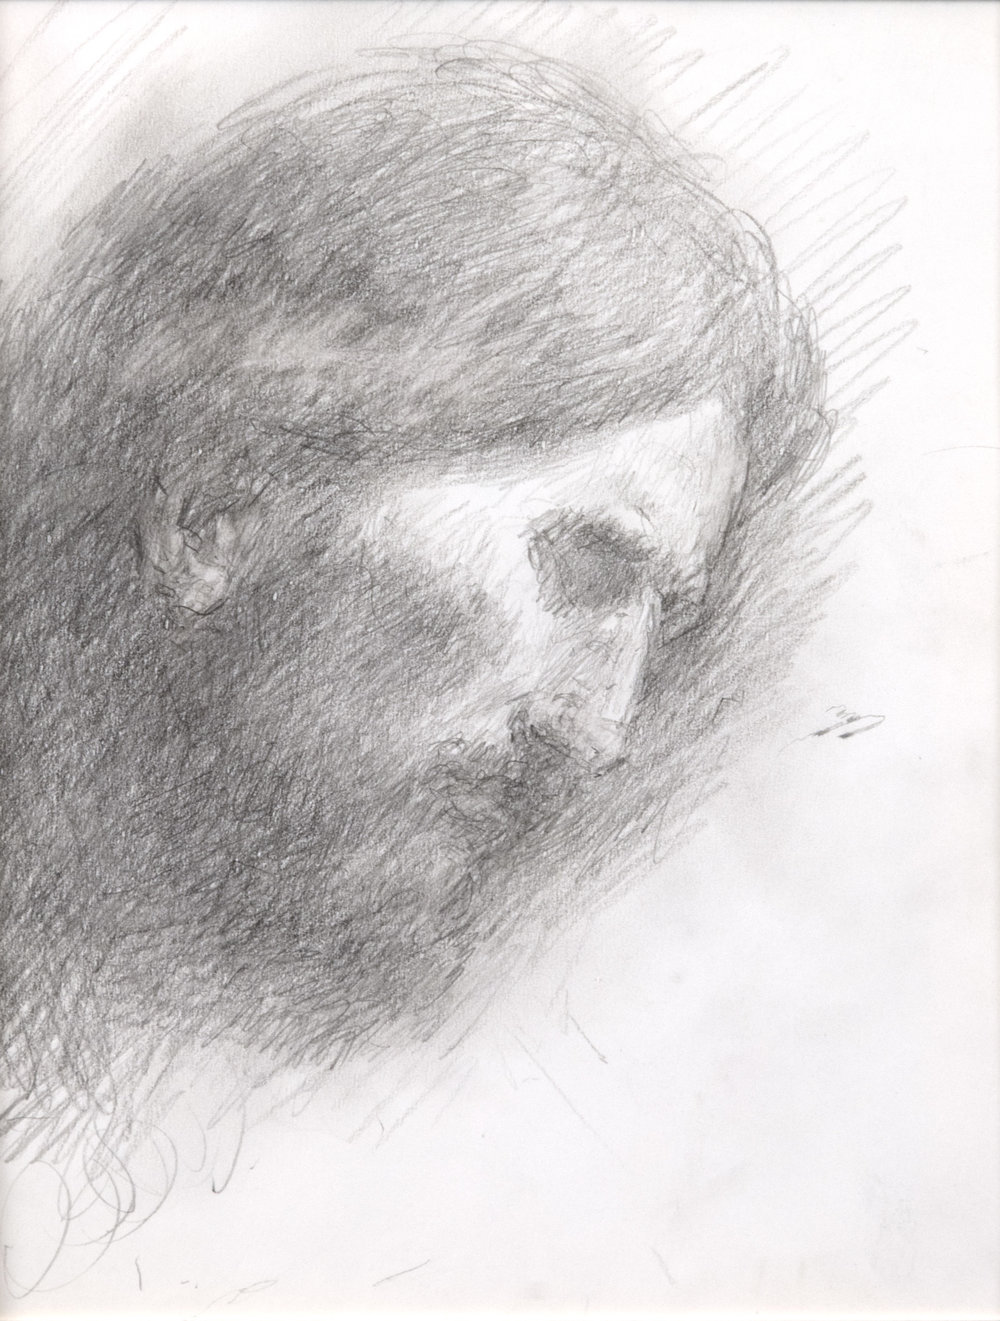 Head of Christ  by ARNOLD FRIBERG. Graphite on Paper. 10 x 8 in.